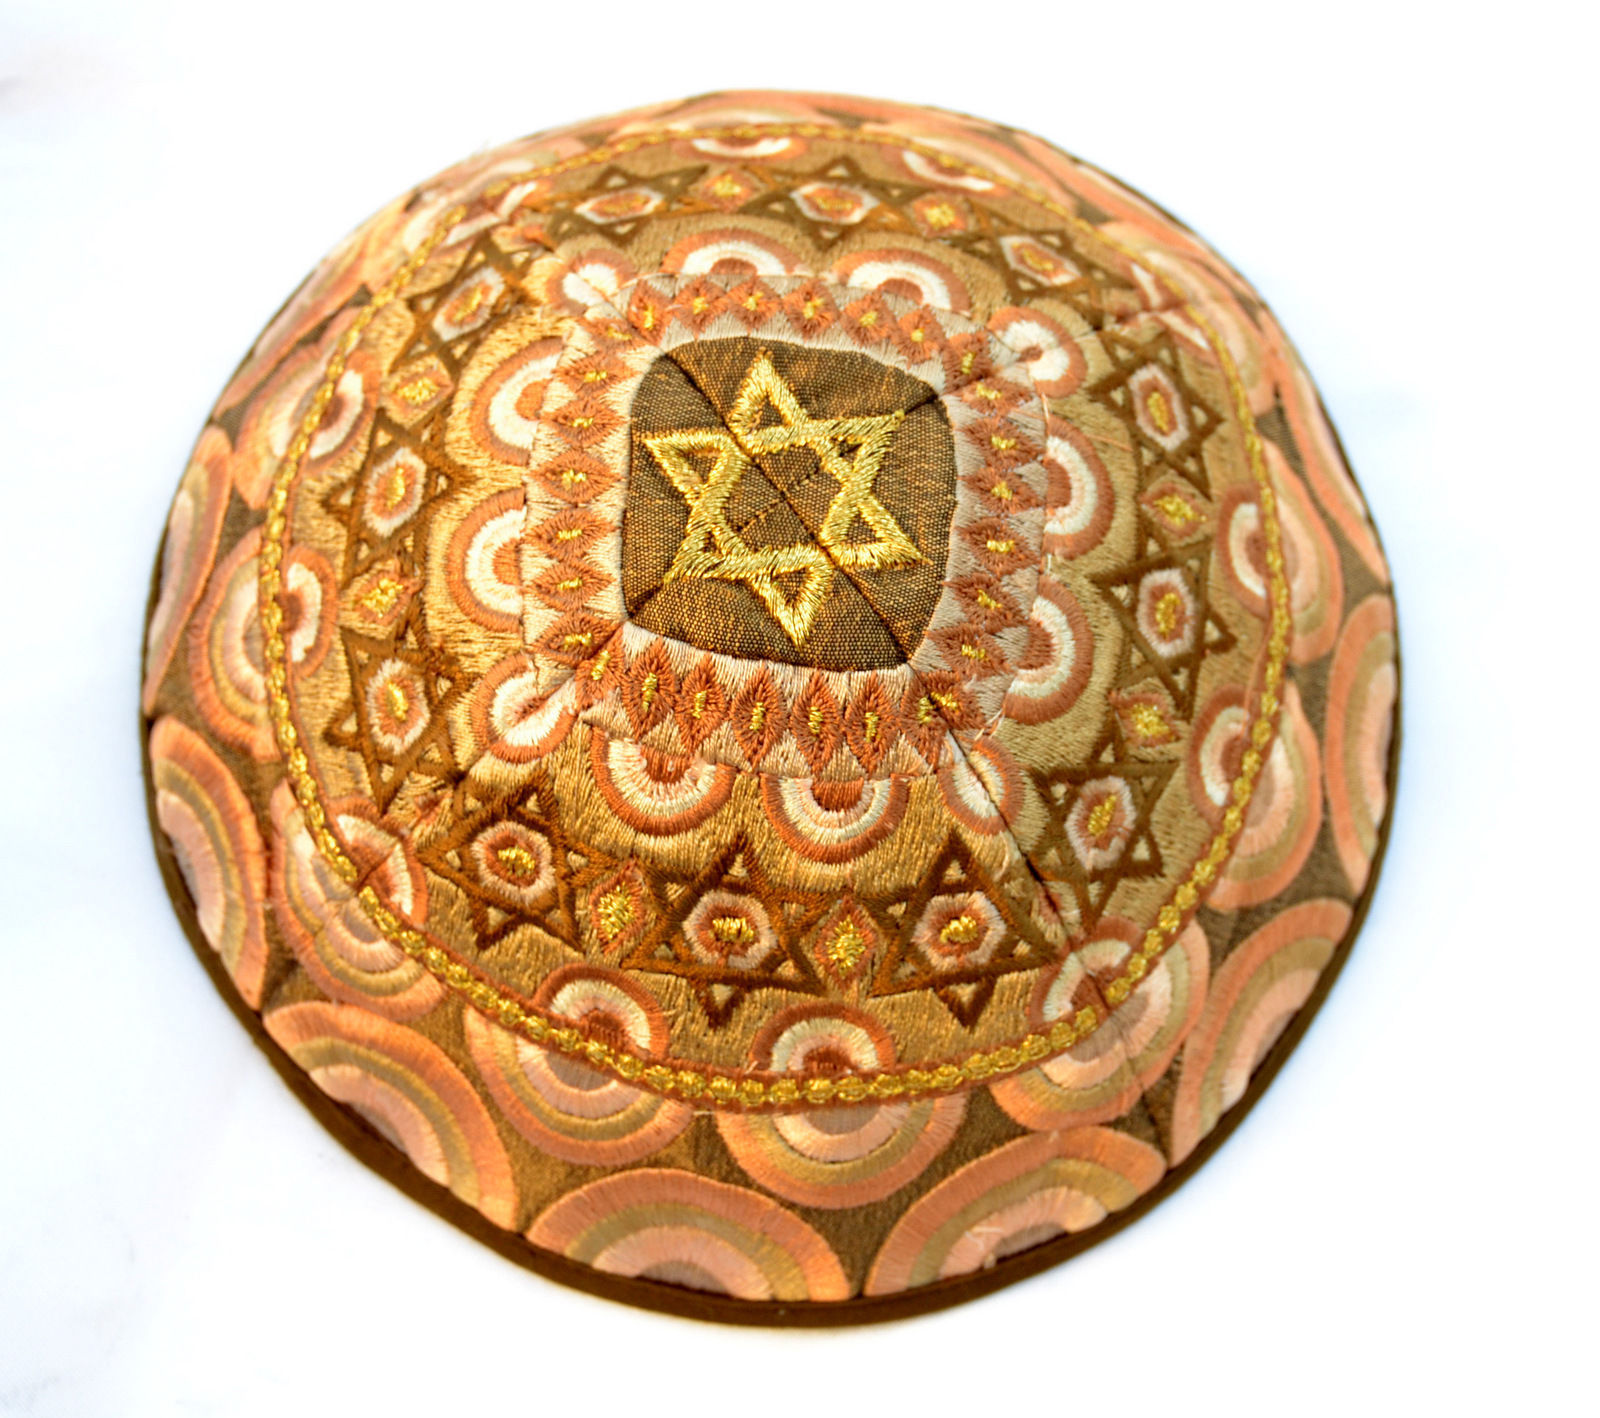 KIPPAH Yarmulke-Embroidered Kippas Star of David Rainbow Emanuel gold S-8